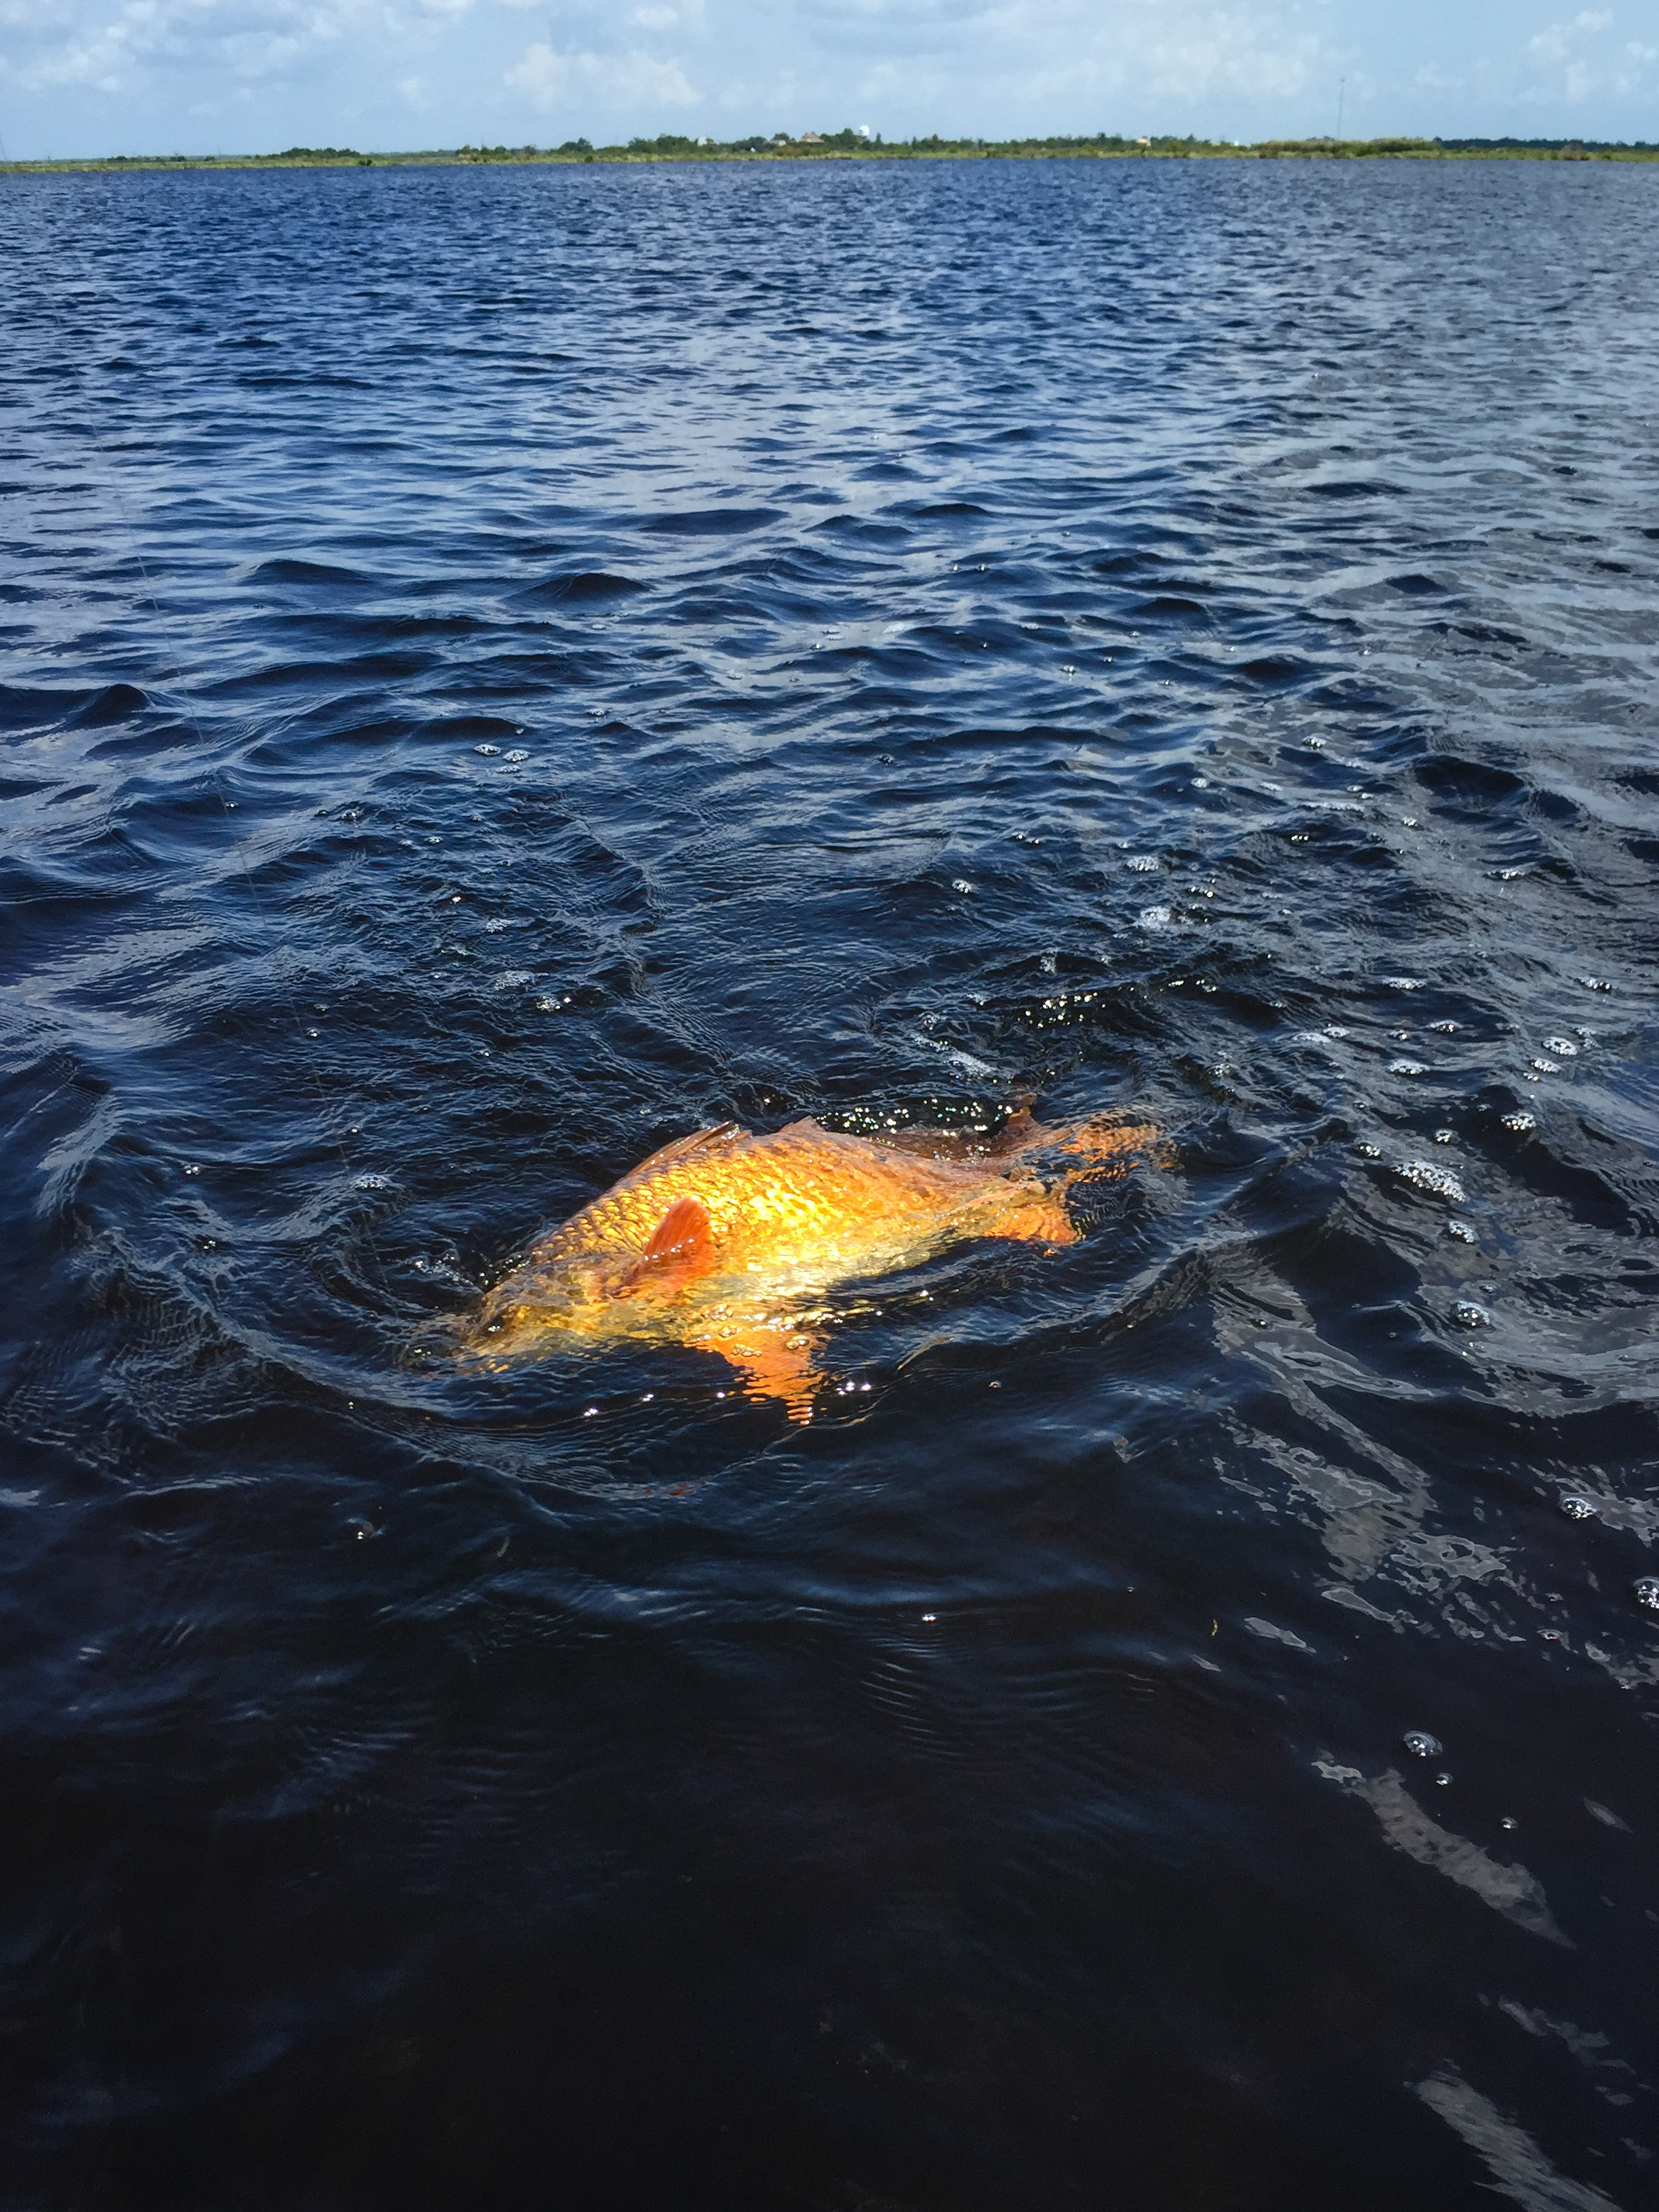 No color quite like the St. Bernard redfish. I always get a little disappointed when I catch redfish in other spots and they're more grey than red.